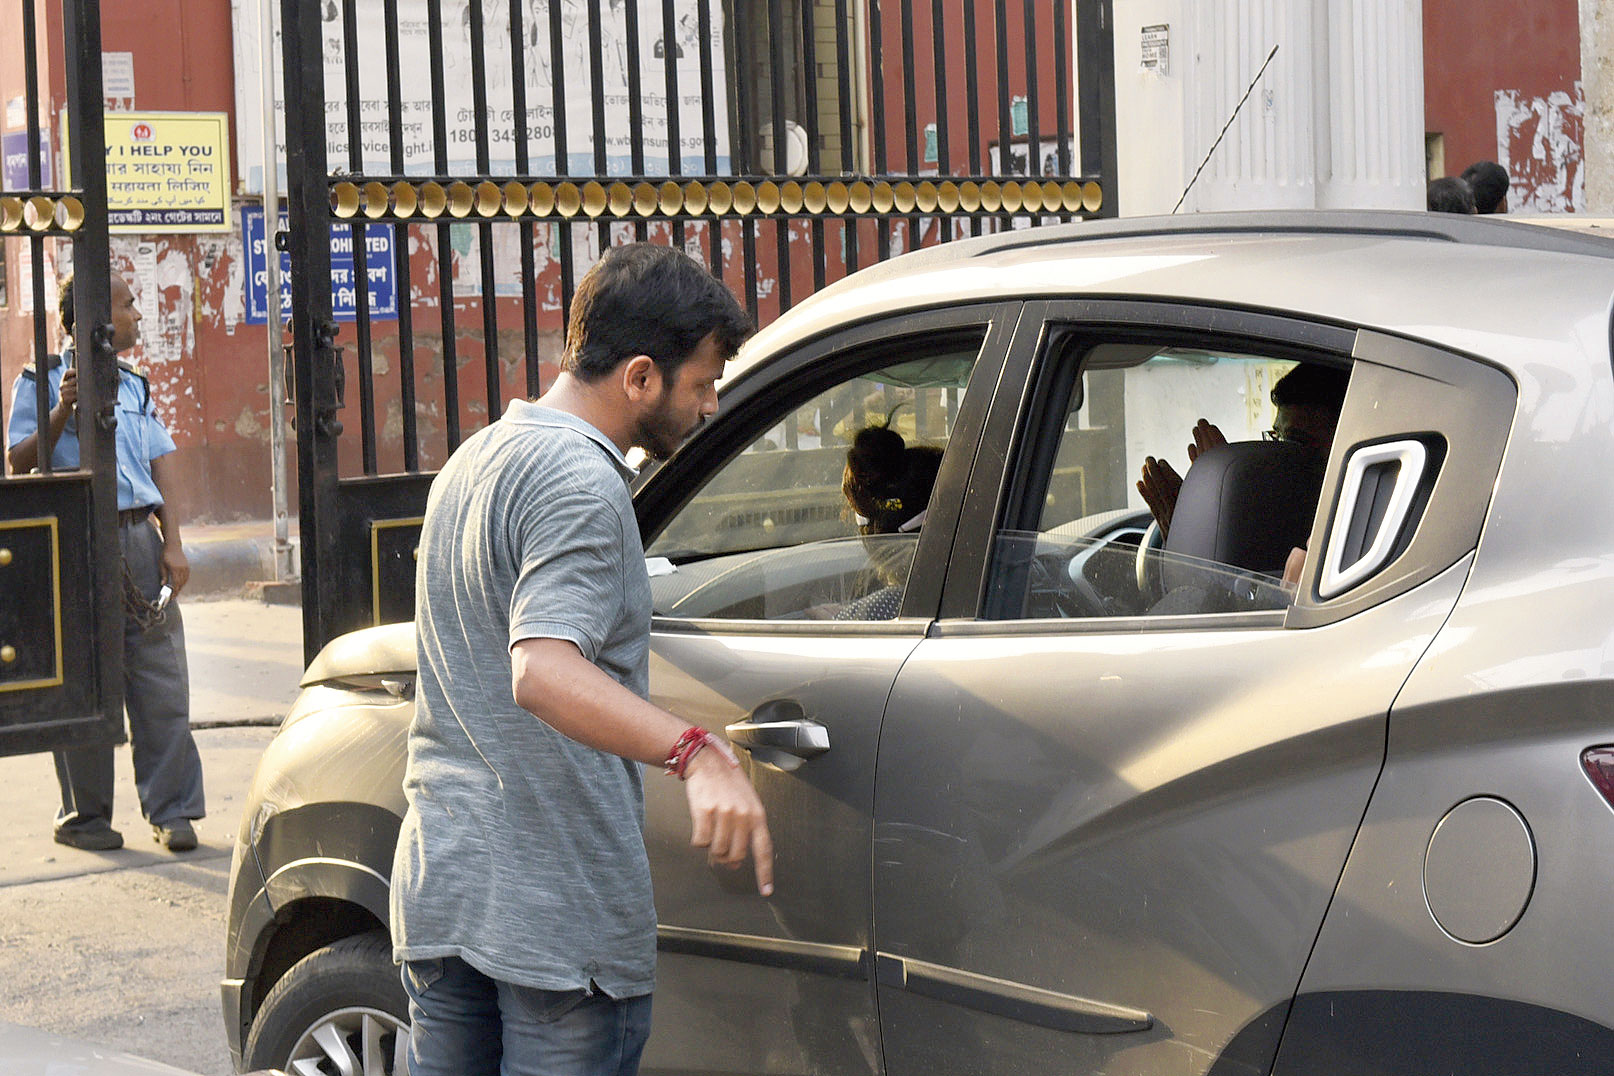 Striking junior doctors at the Calcutta Medical College and Hospital stopped a car carrying relatives of a patient at gate No. 3 on Sunday. Shoumik Saha, who had come with his family members to visit his mother-in-law Shikha Sen, was asked to park his car outside the hospital compound.